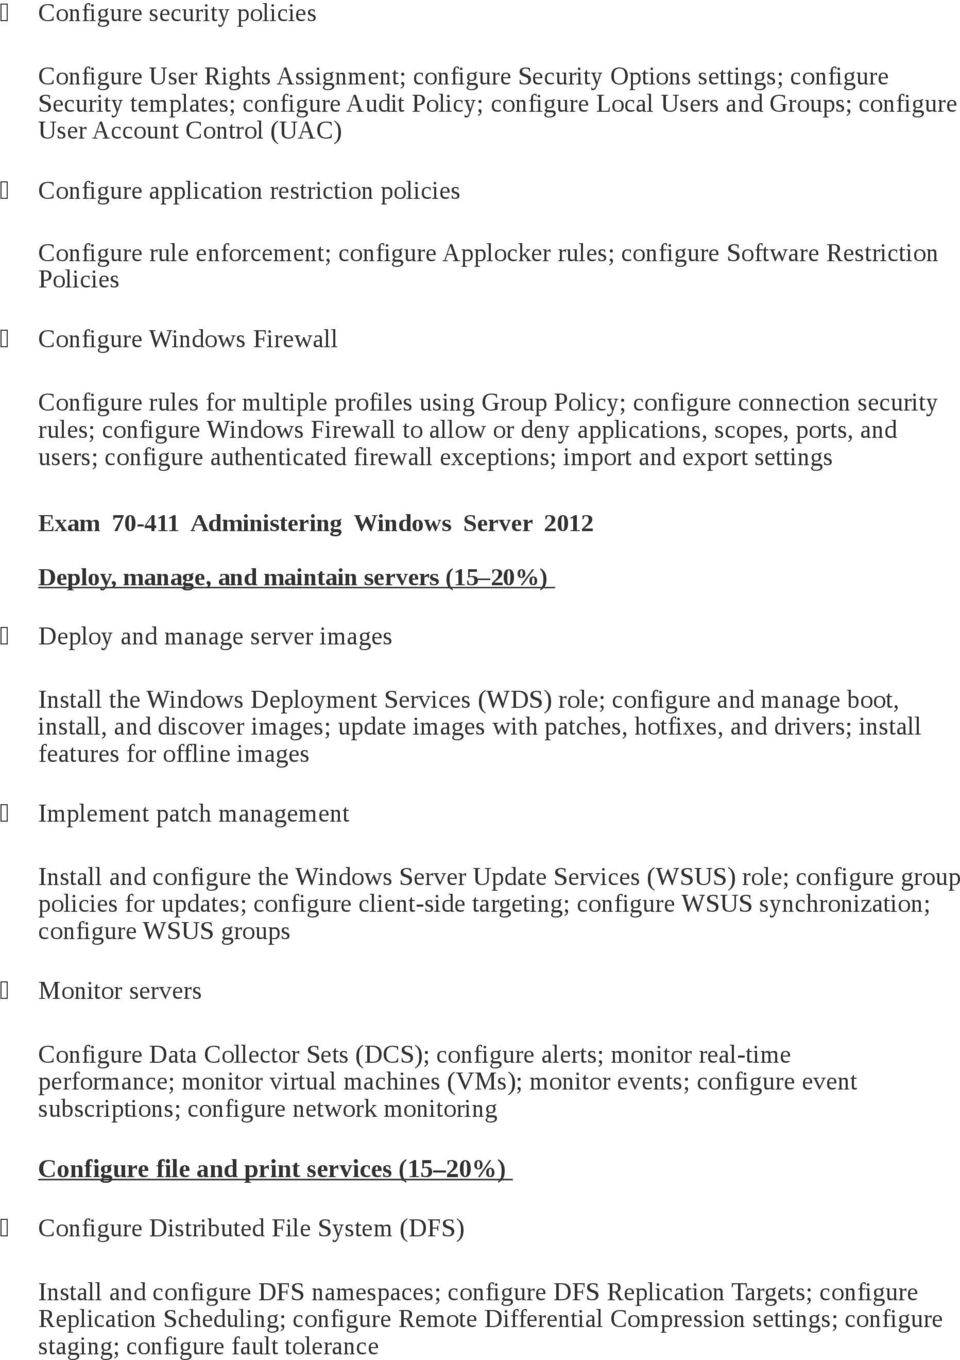 Configure rules for multiple profiles using Group Policy; configure connection security rules; configure Windows Firewall to allow or deny applications, scopes, ports, and users; configure